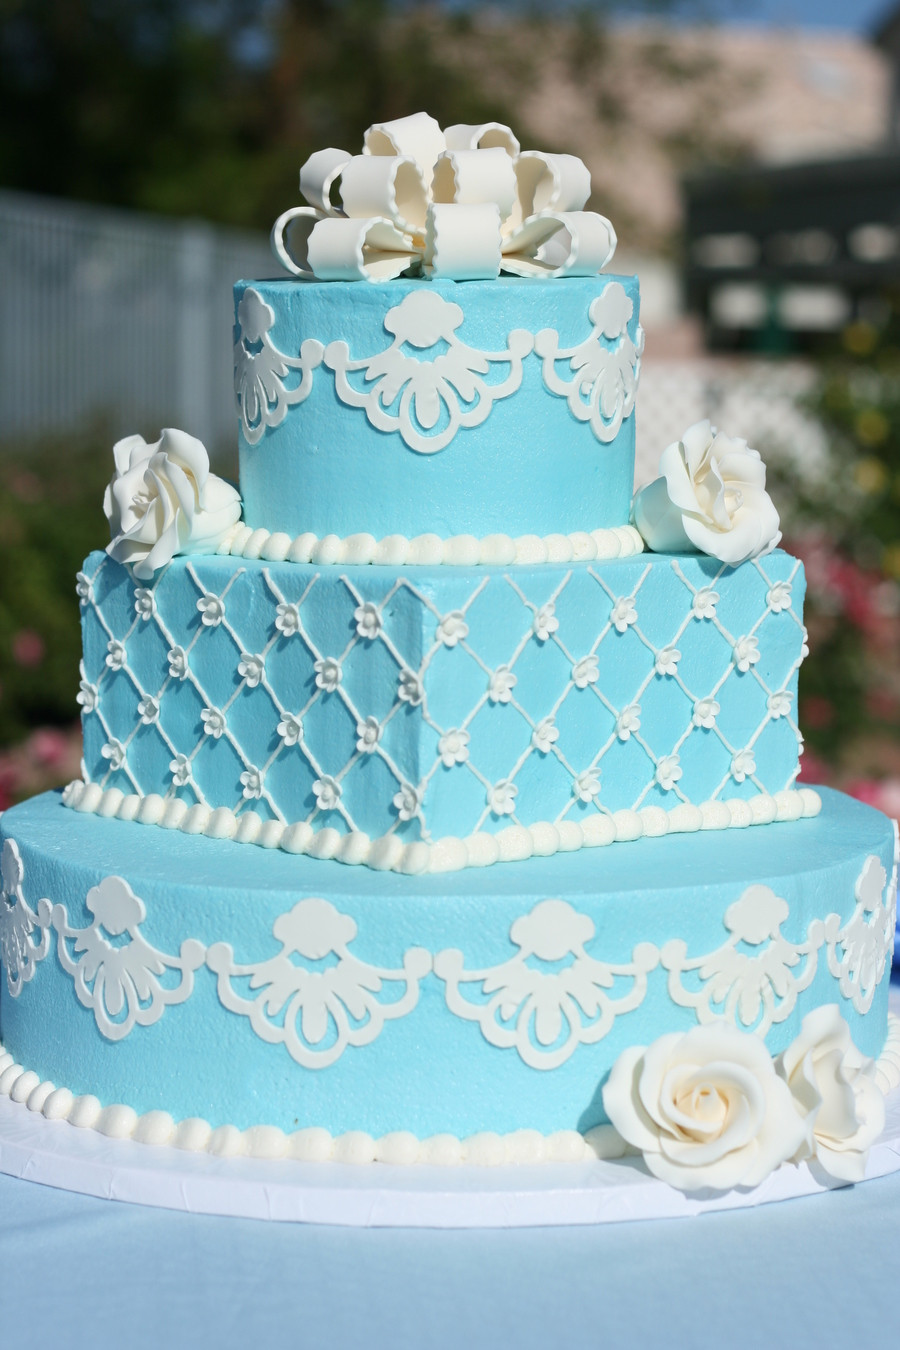 Wedding Cake Blue And White  Blue And White Wedding Cake Vow Renewal CakeCentral